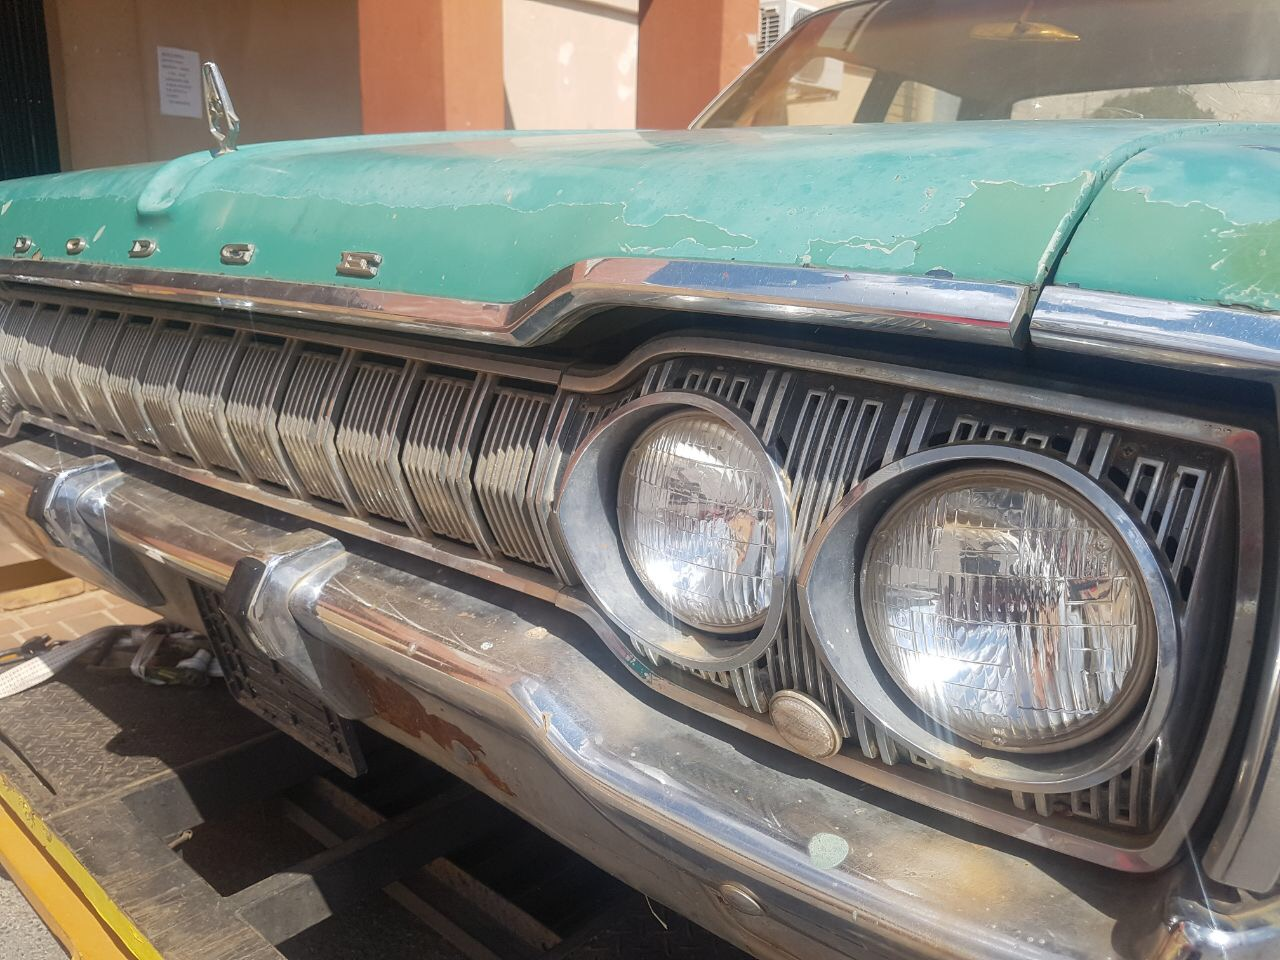 1956 bel air for sale submited images - 1965 Dodge Monaco For Sale